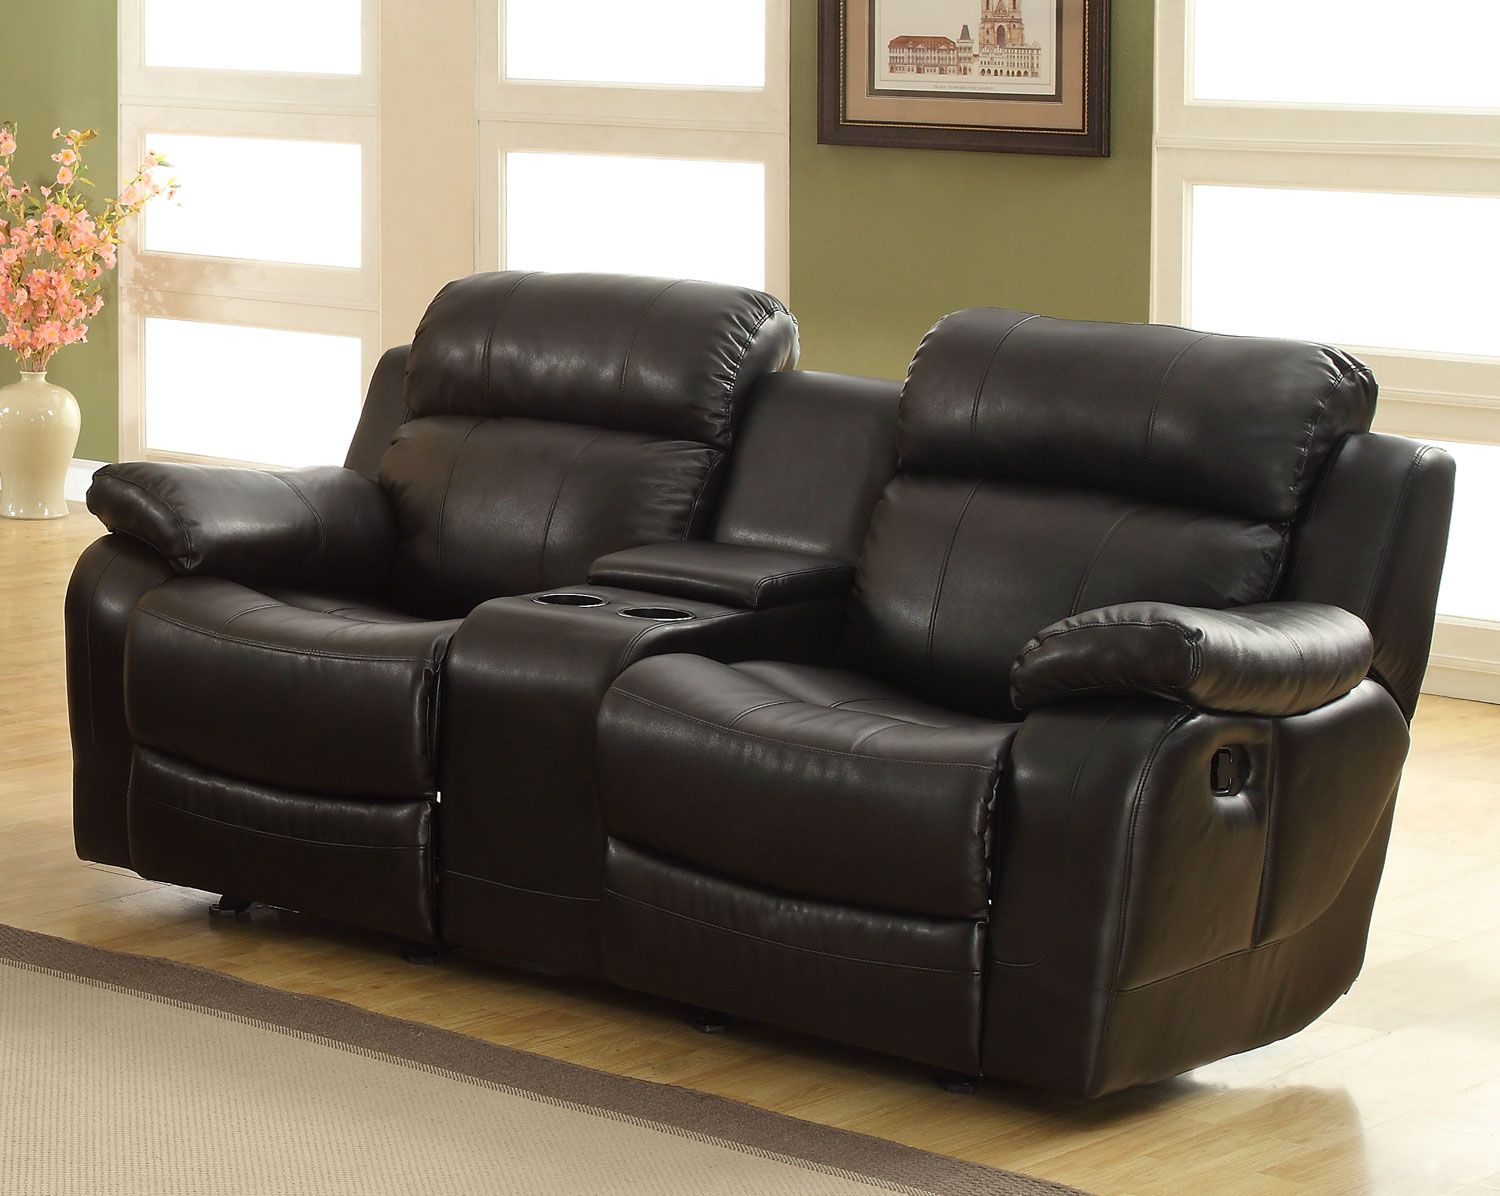 Homelegance Marille Love Seat Glider Recliner With Center